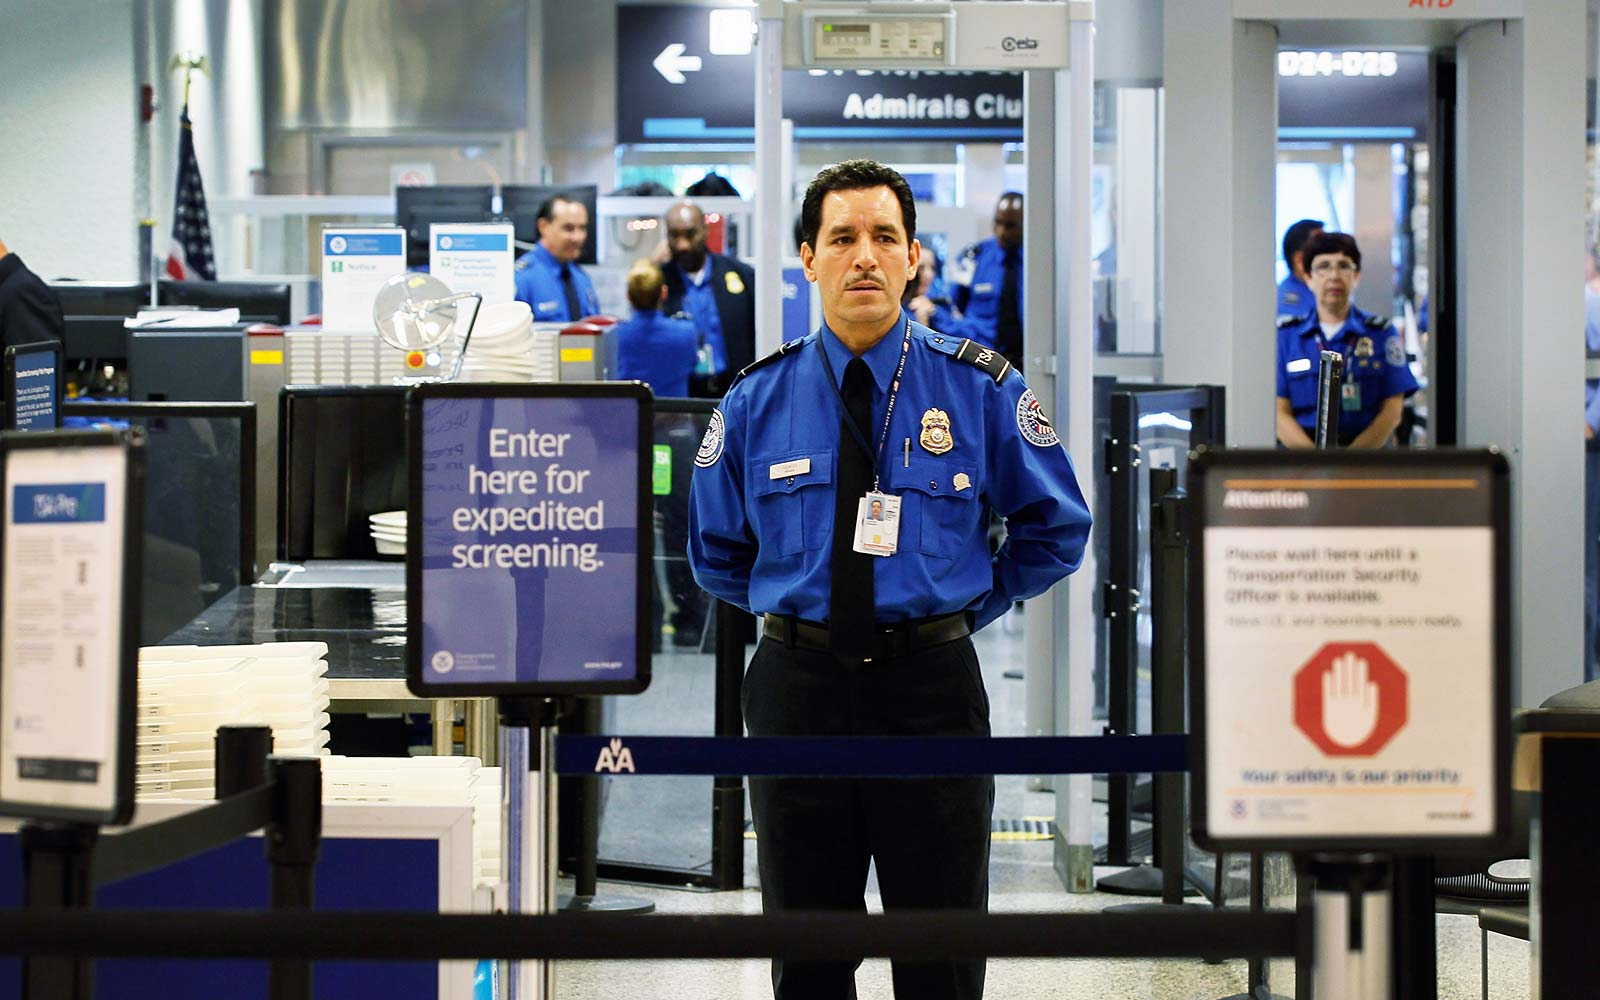 Undercover TSA Agents Could Be Spying on You